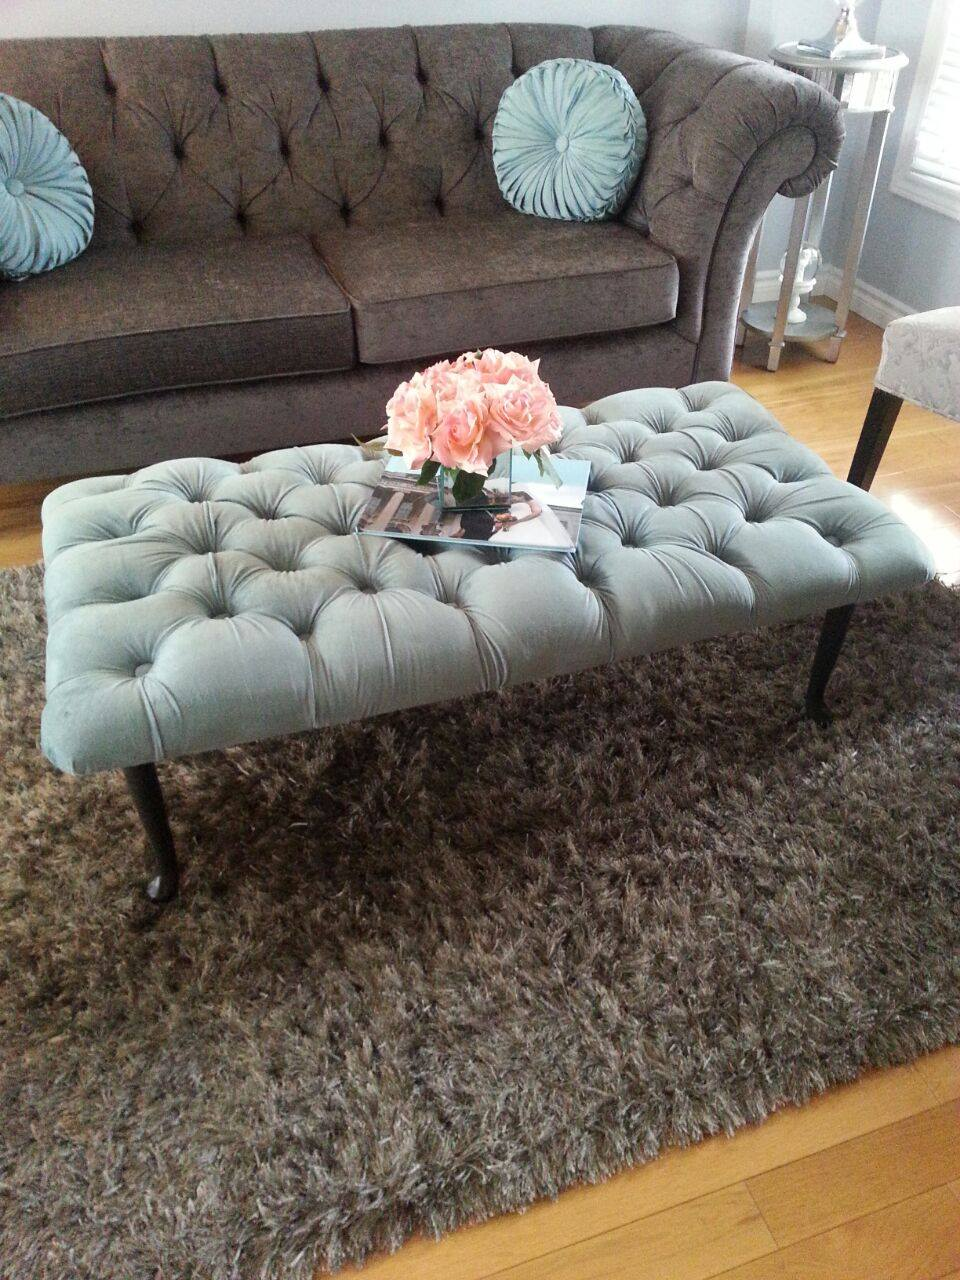 Stunning Urban Kid Friendly Coffee Table With Tuf Pattern With Pink Rose On  Gray Area Rug